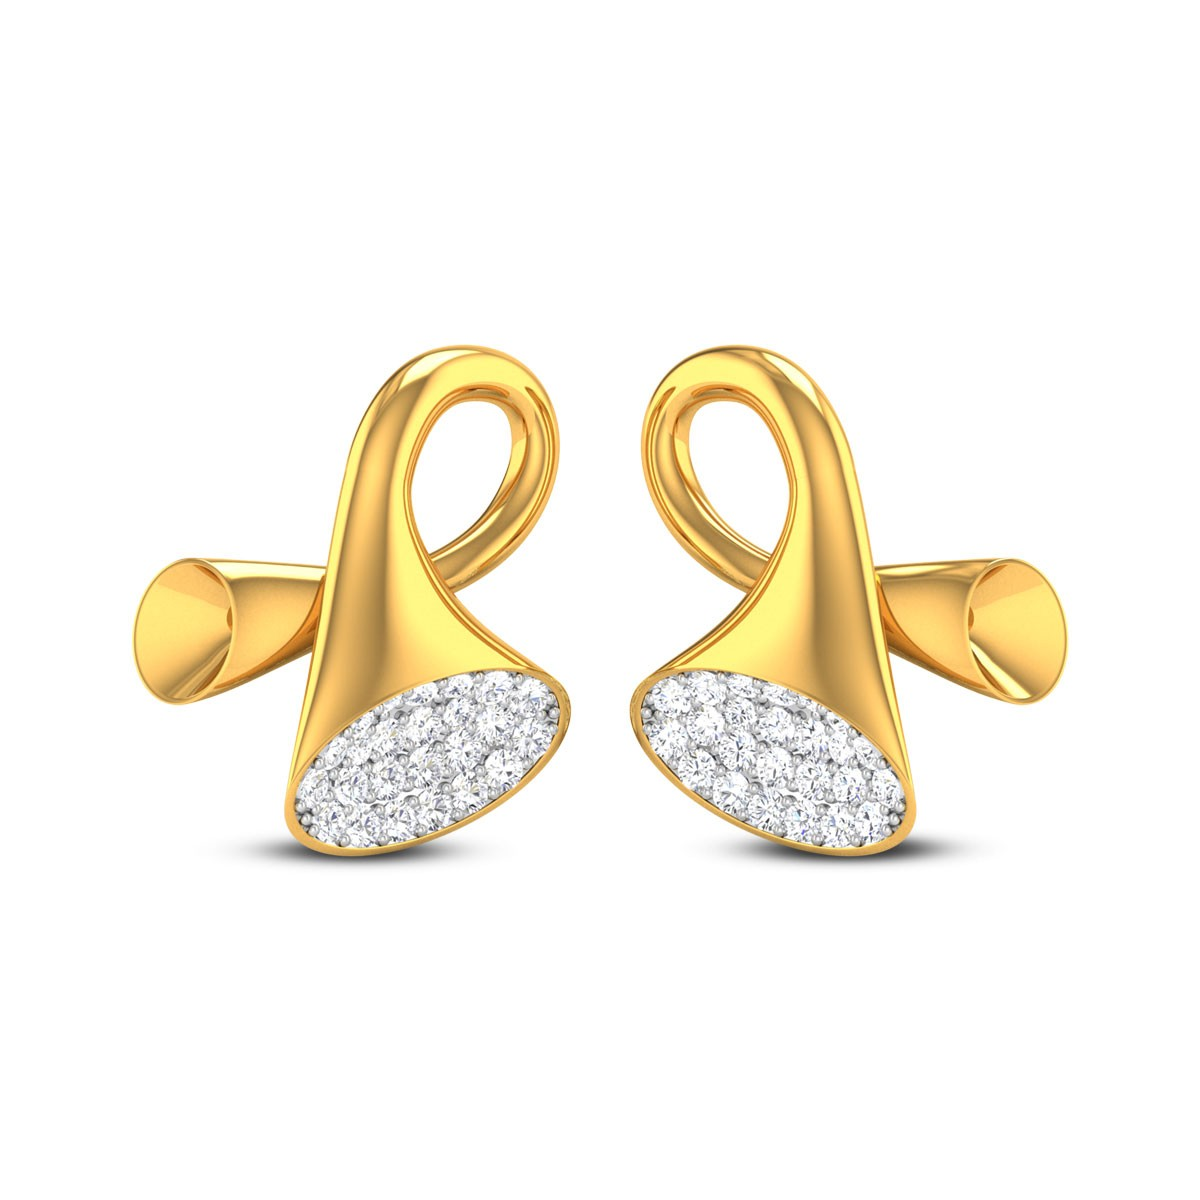 June Diamond Earrings